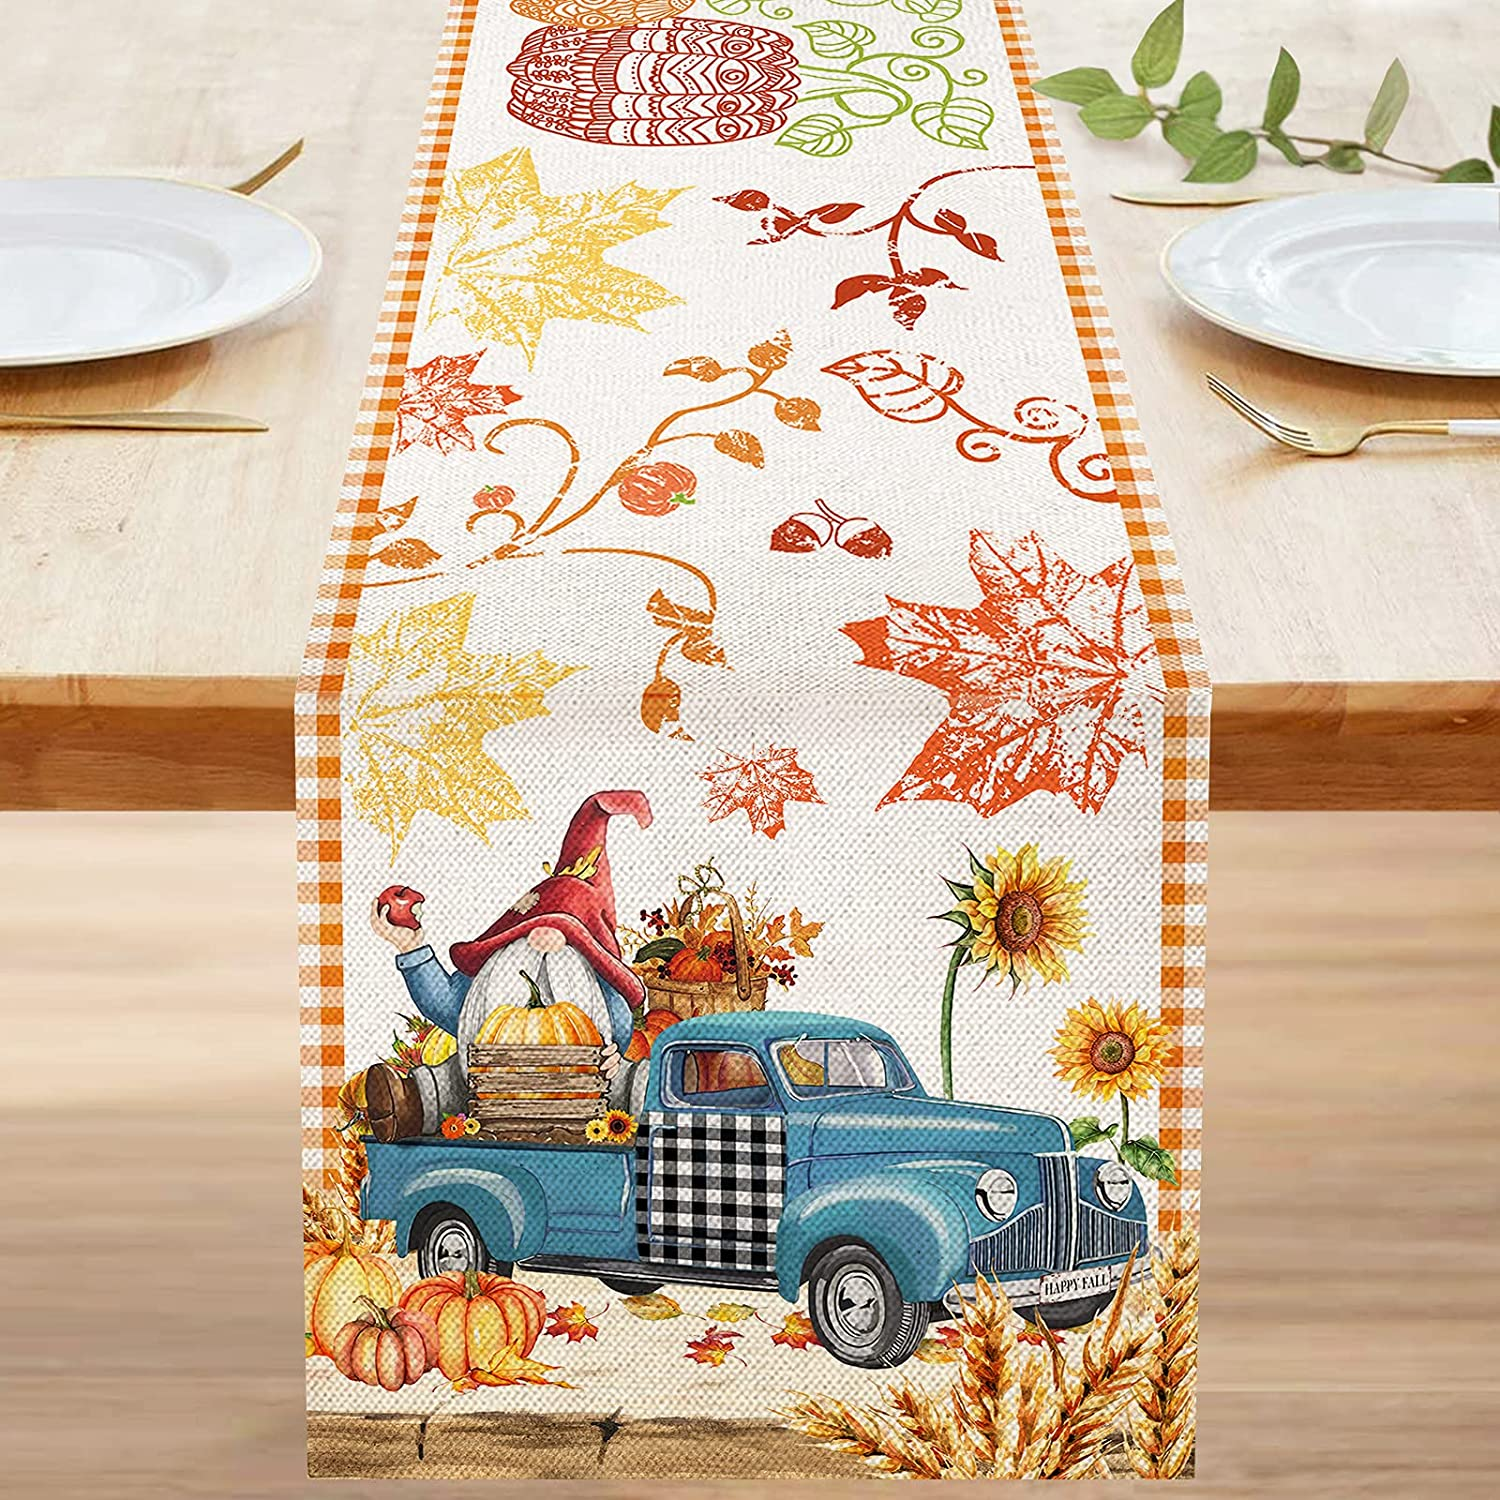 Bonsai Tree Fall Table Runner 72 Inch, Happy Fall Yall Autumn Pumpkins Burlap Table Runners, Primitive Blue Truck Gnome Harvest Small Dresser Scarves Table Cloth Decor for Home Dining Room Parties